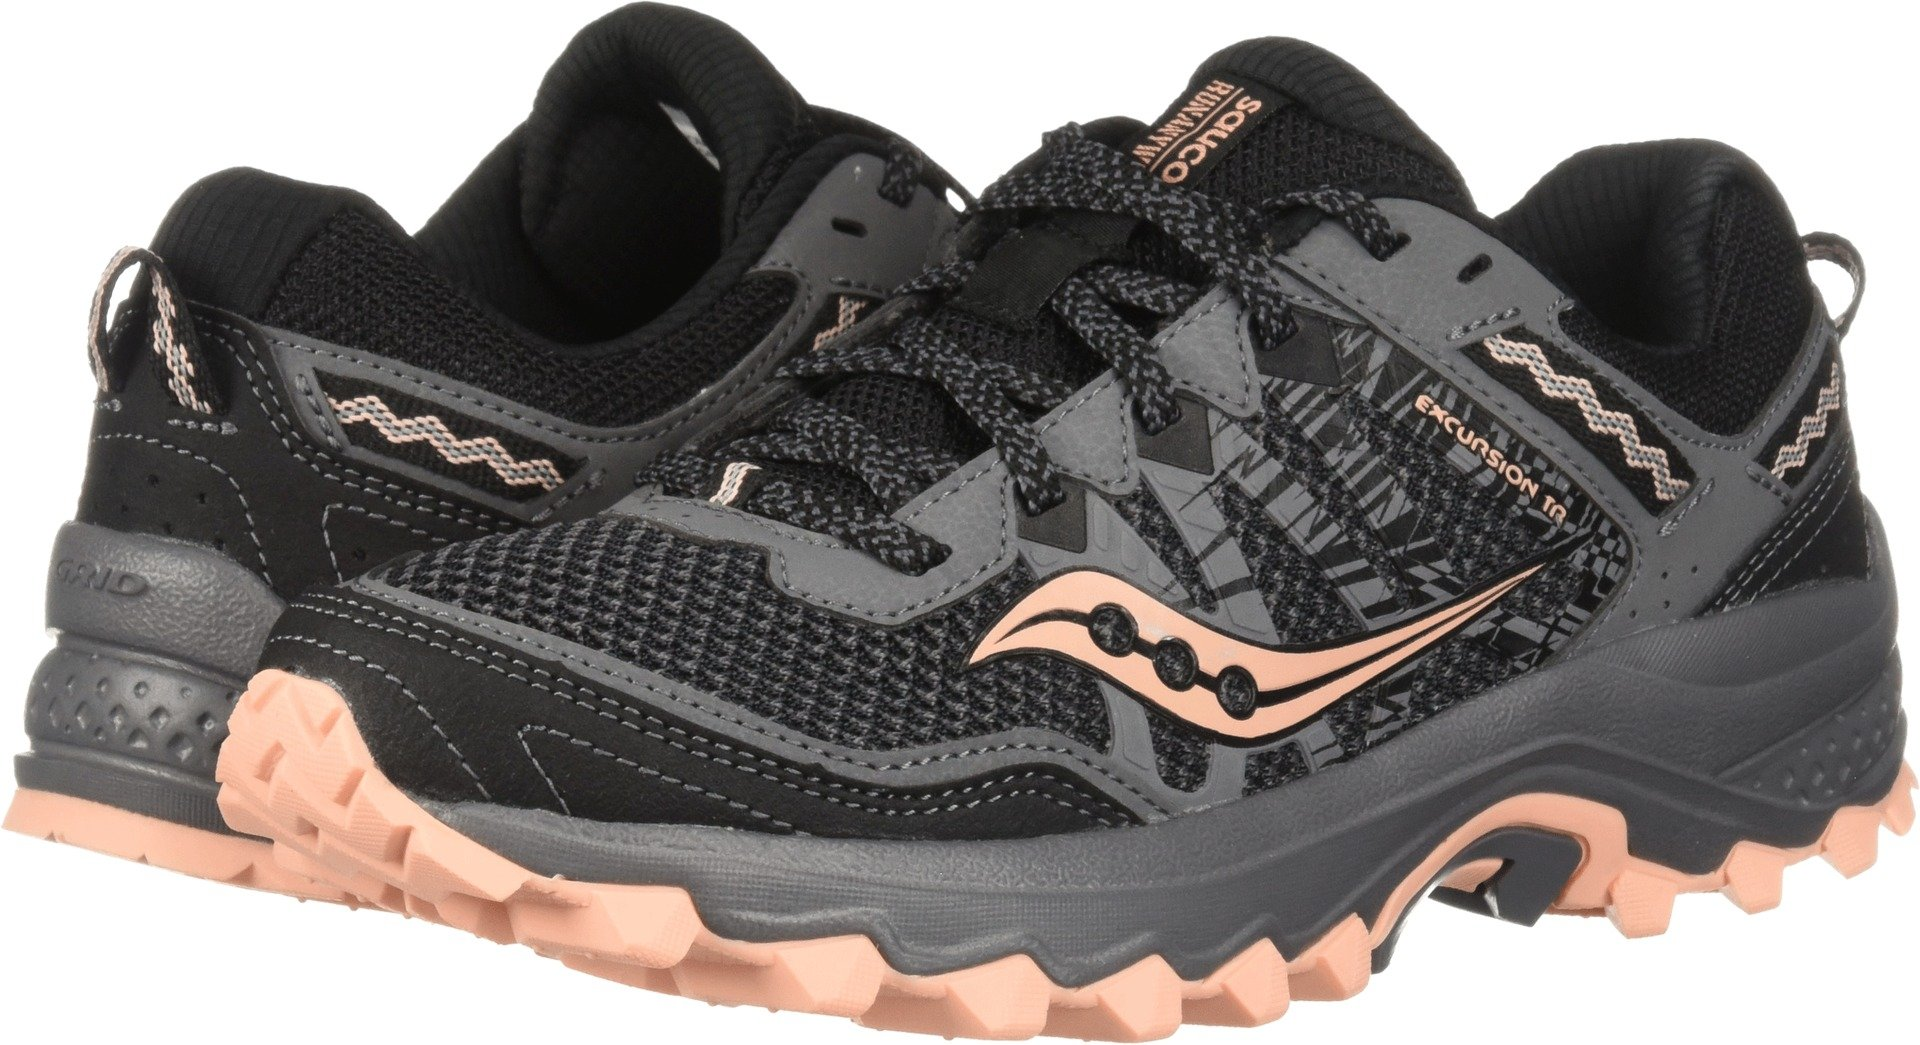 Saucony Women's Excursion TR12 Sneaker, Grey/Peach, 7 M US